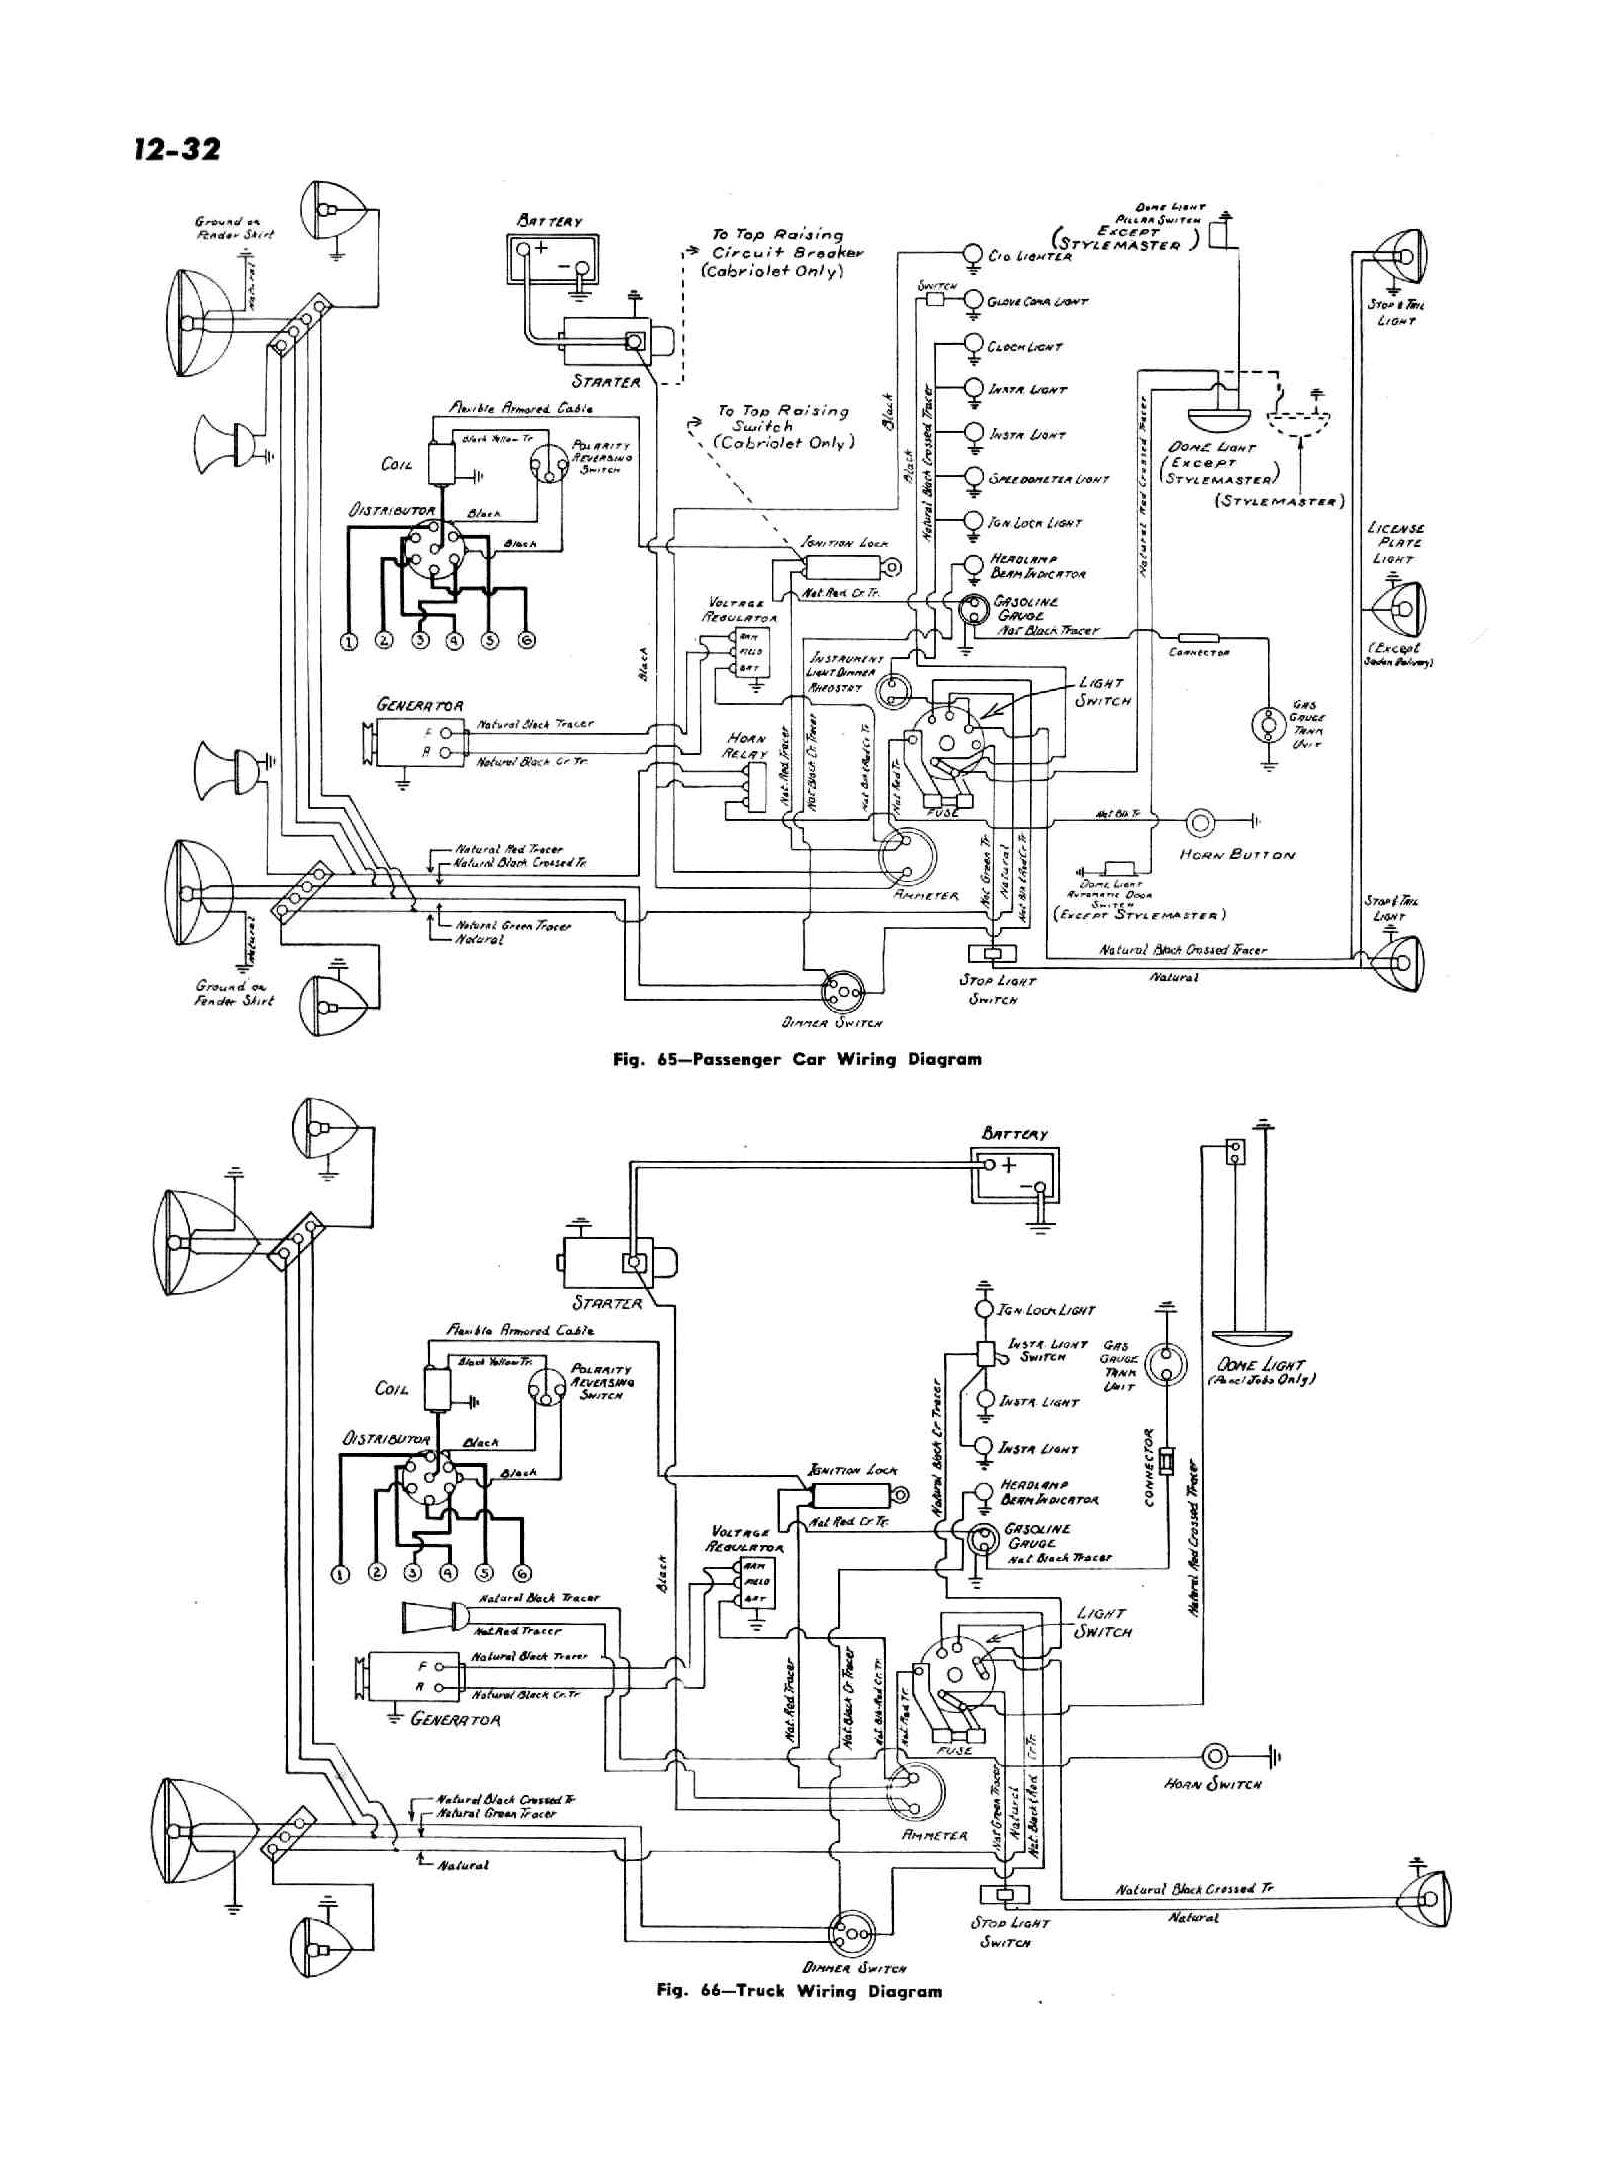 chevy wiring diagrams with 6 volt generator wiring diagram?resize=665%2C899&ssl=1 ford 8n wiring diagram ford 800 wiring diagram, ford 6000 wiring ford 7610 wiring diagram at readyjetset.co